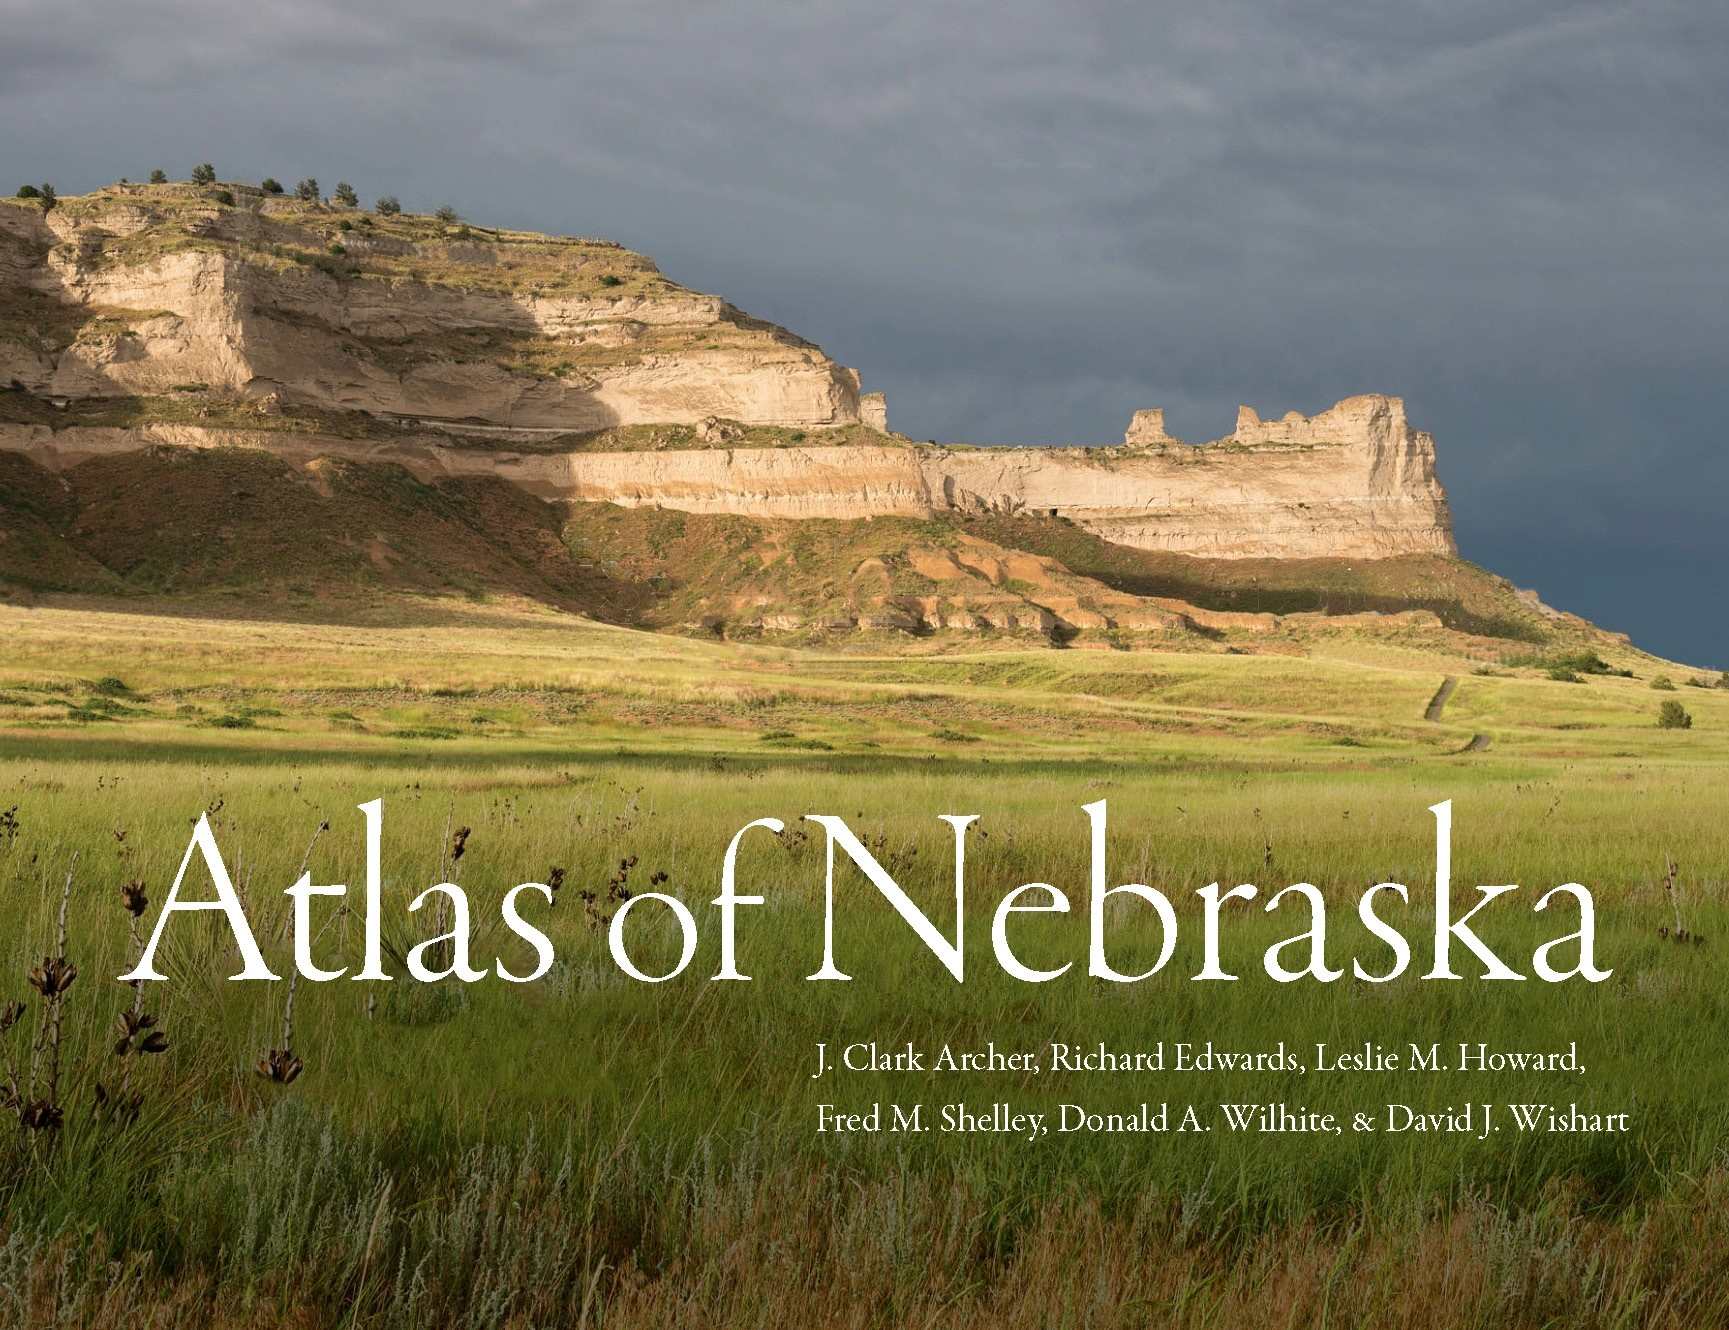 Atlas of Nebraska (MP-126)